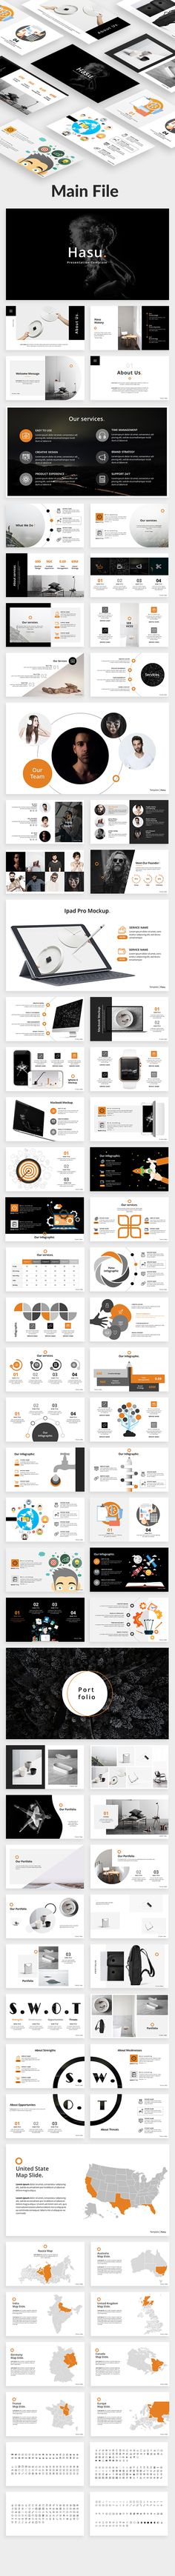 Hasu Creative Powerpoint Template — Powerpoint PPT #company #infographics • Download ➝ https://graphicriver.net/item/hasu-creative-powerpoint-template/20309716?ref=pxcr